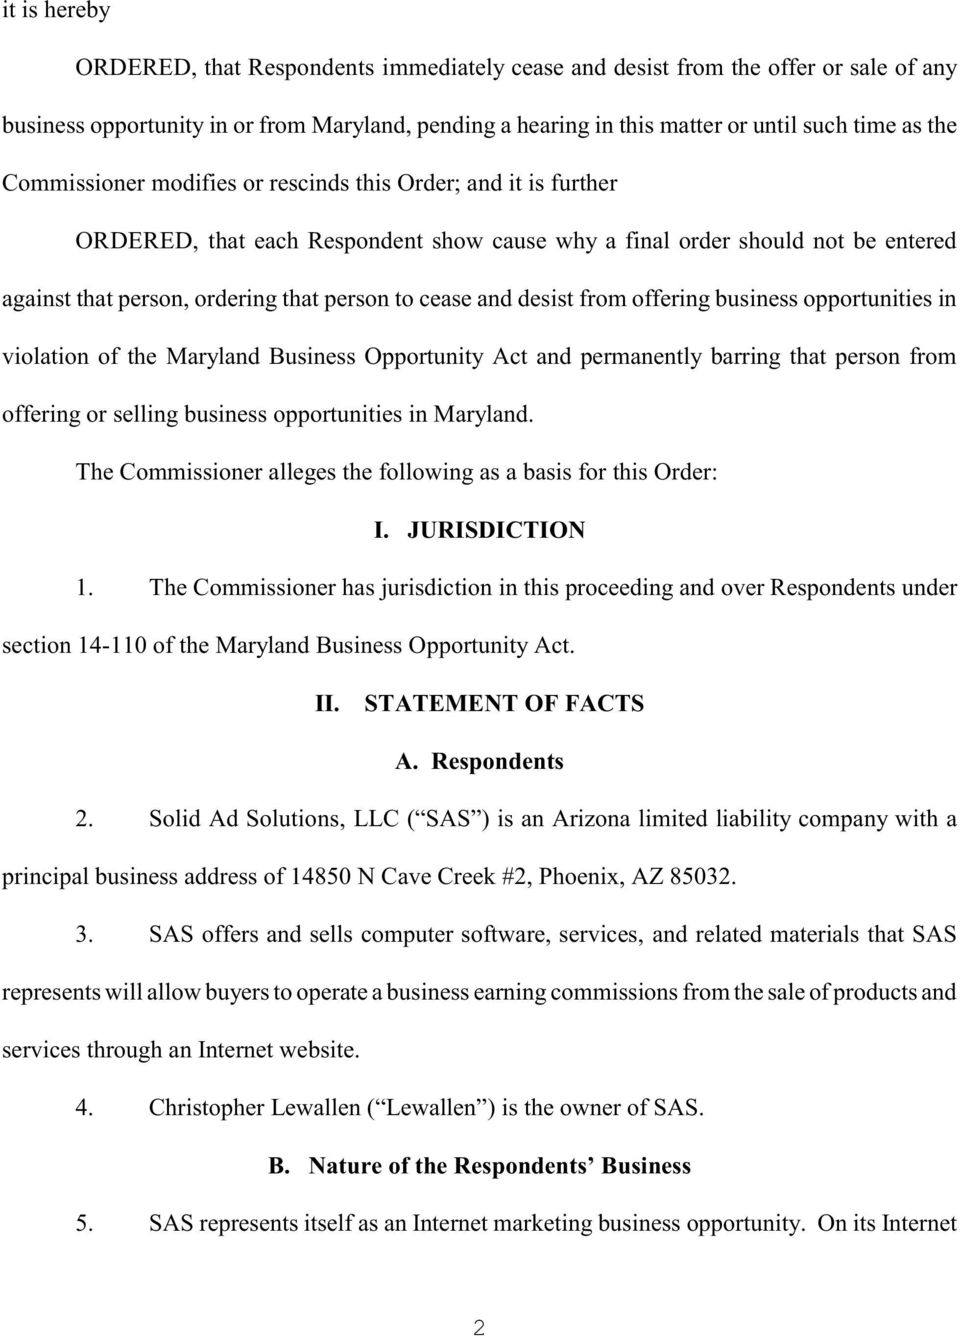 desist from offering business opportunities in violation of the Maryland Business Opportunity Act and permanently barring that person from offering or selling business opportunities in Maryland.